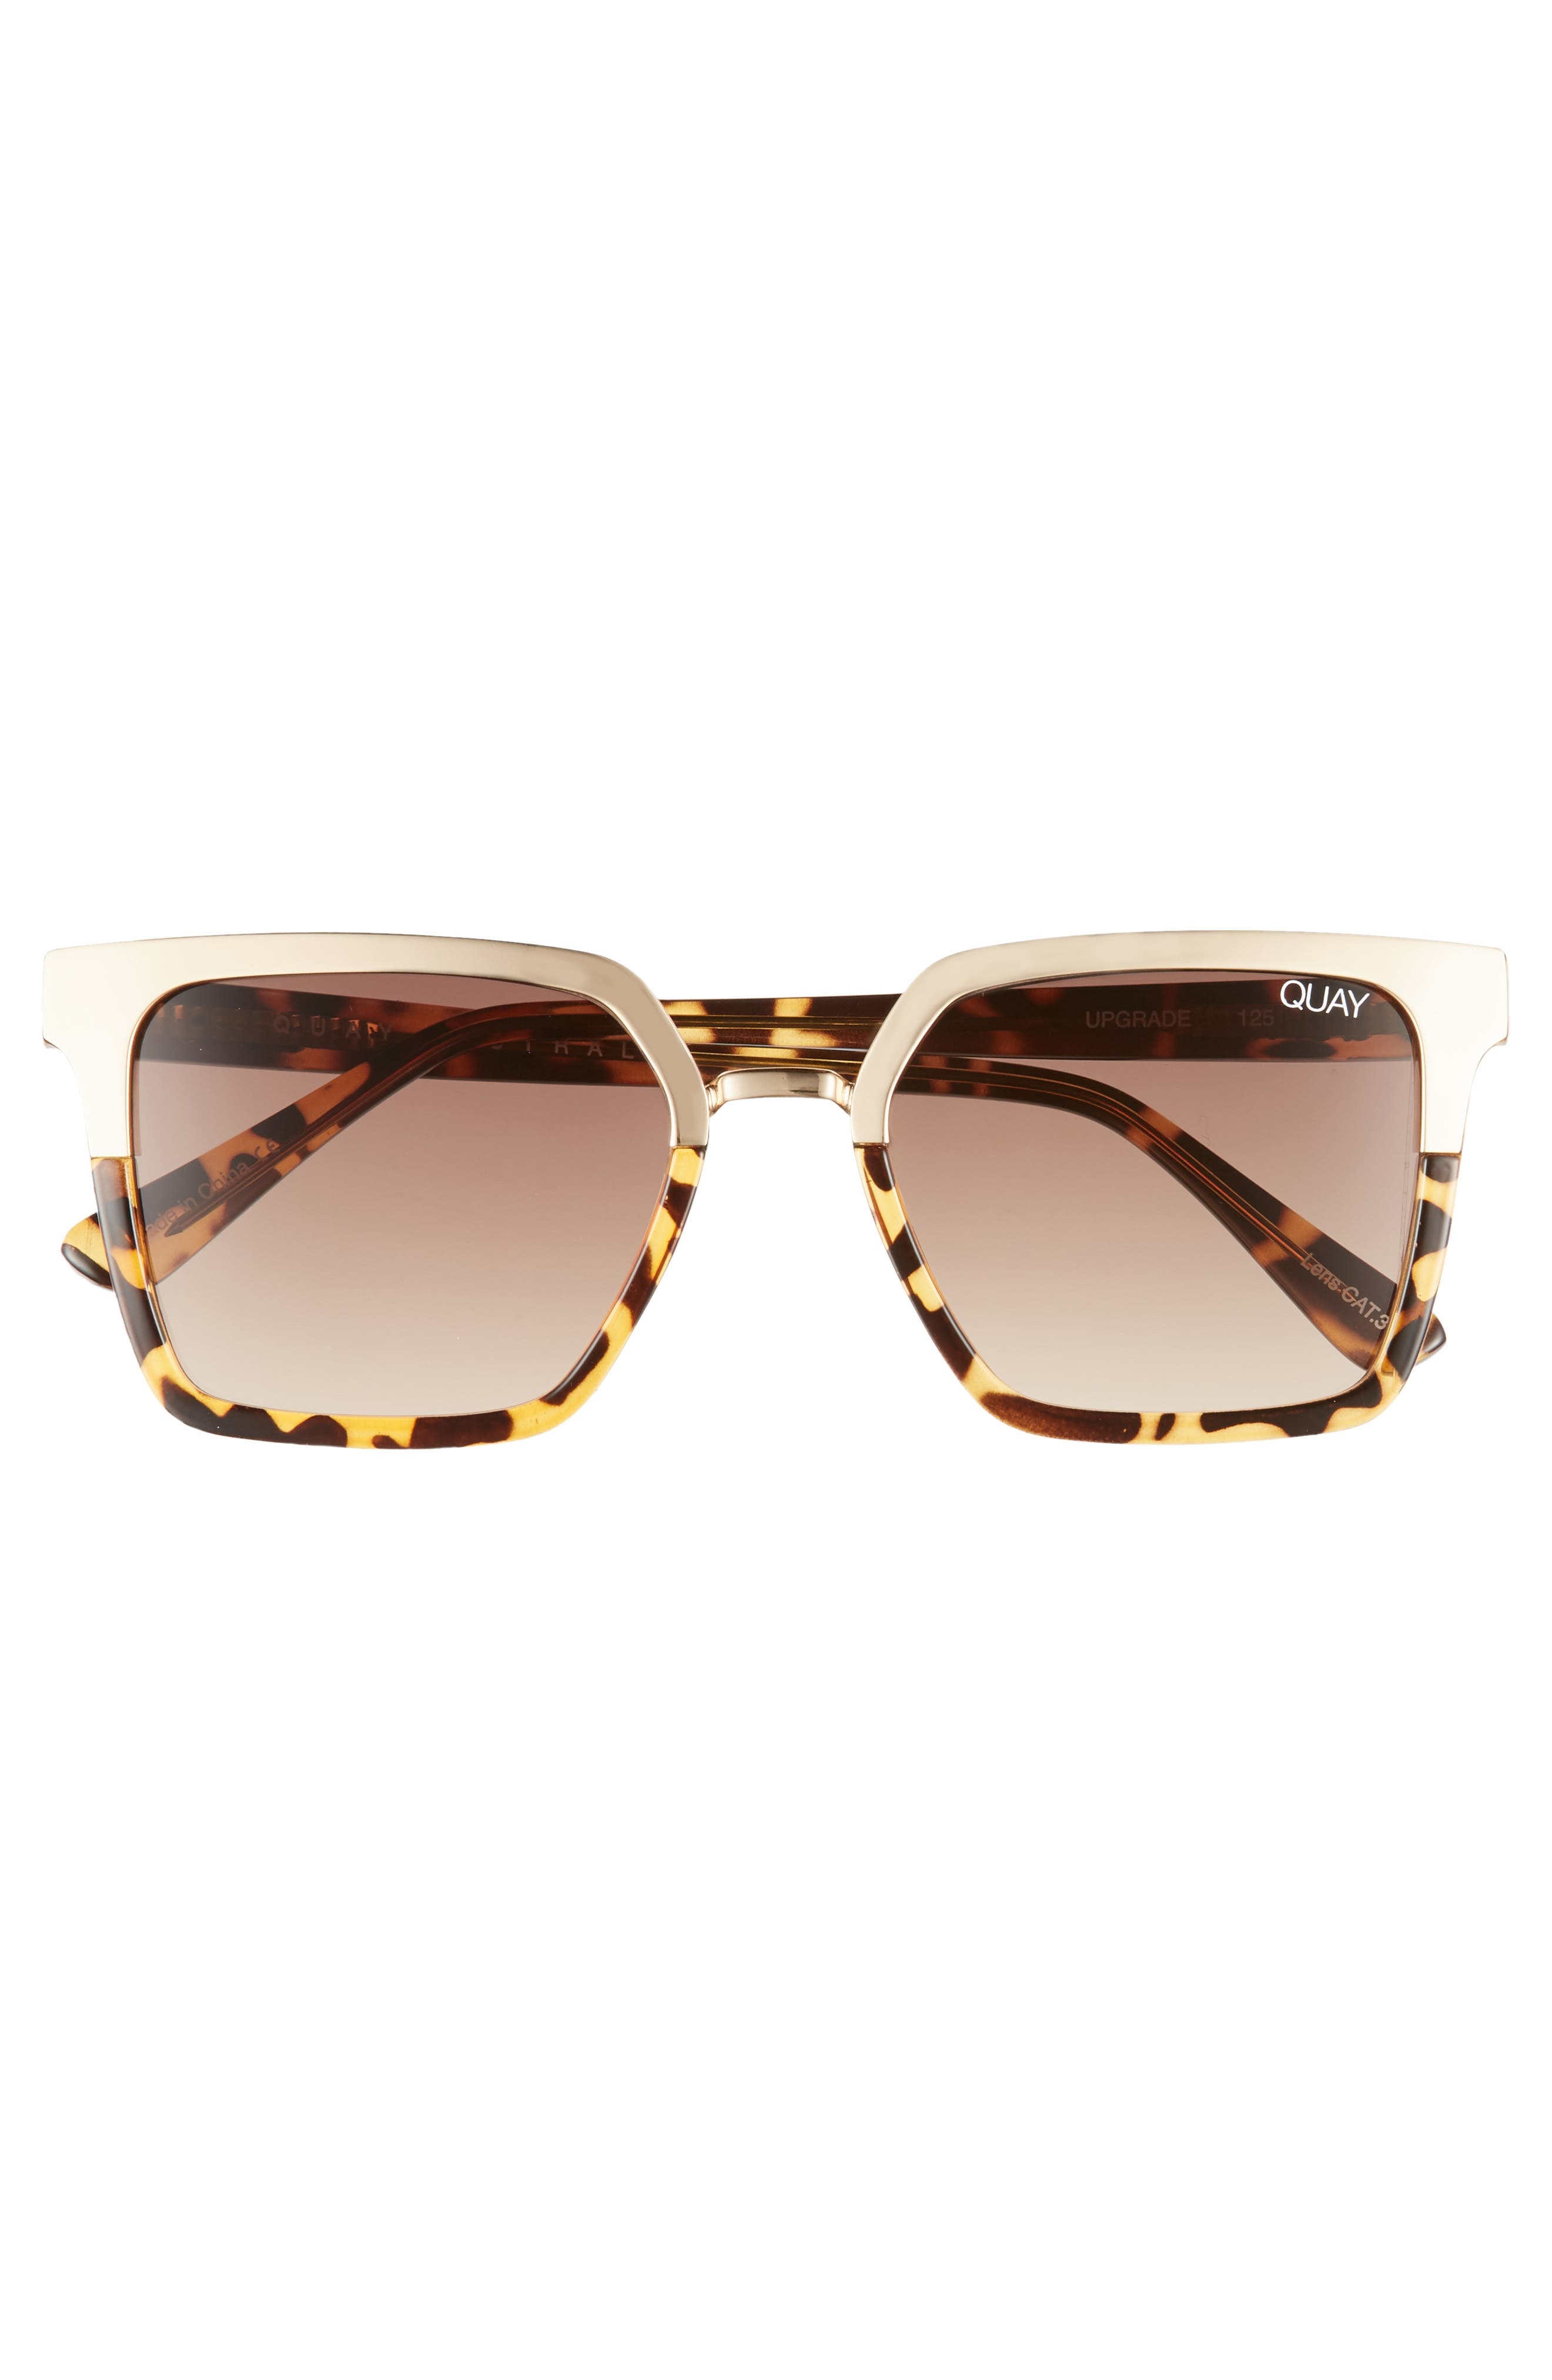 x Jaclyn Hill Upgrade 55mm Square Sunglasses,                             Alternate thumbnail 4, color,                             TORT GOLD / BROWN